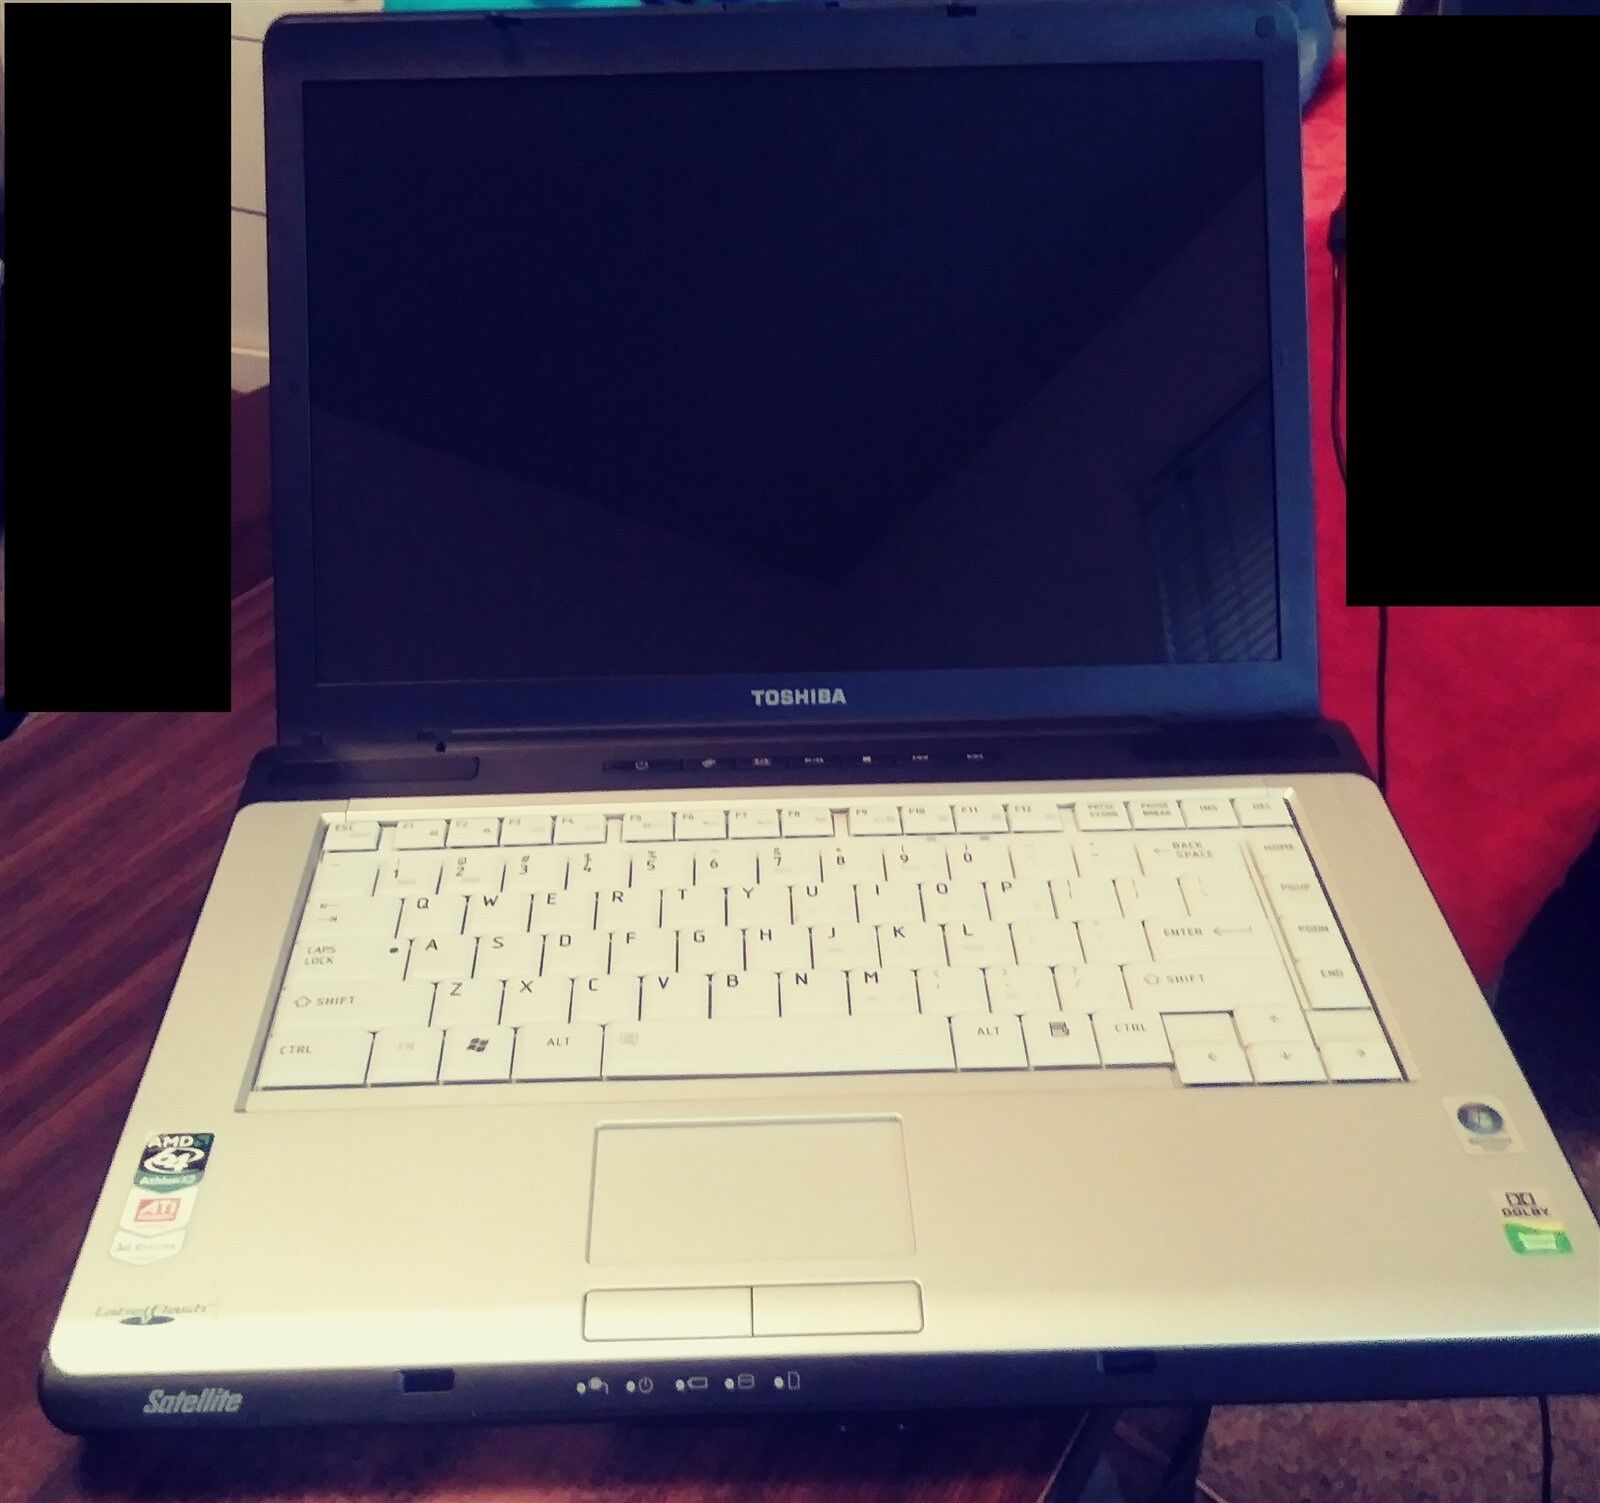 Toshiba Satellite A215 - S7428- AMD - No Hard Drive - 2 GB Ram - Parts or Repair